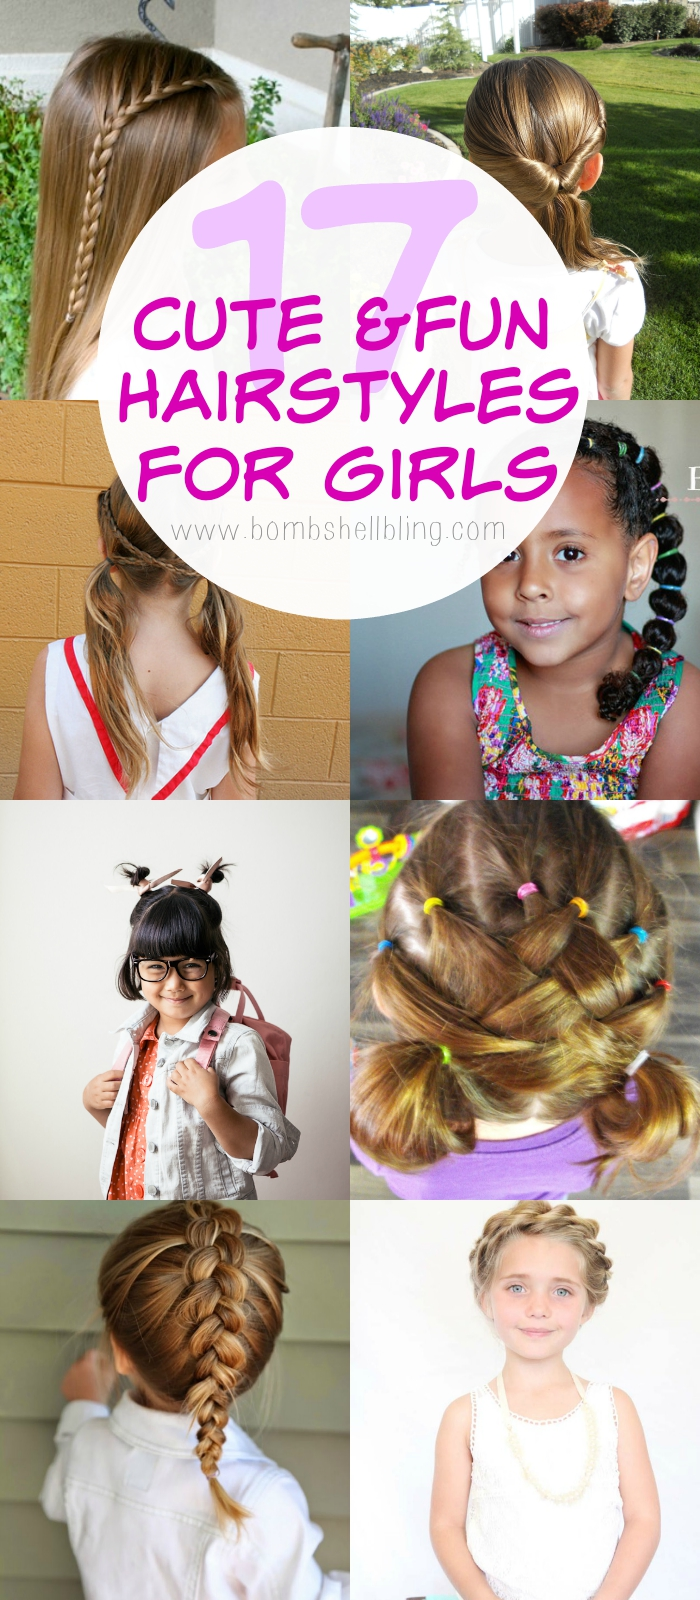 I hope these 17 hairstyles for girls inspire you to try something new with your daughter's hair! Be sure to check out my other Beauty & Fashion posts and my ...